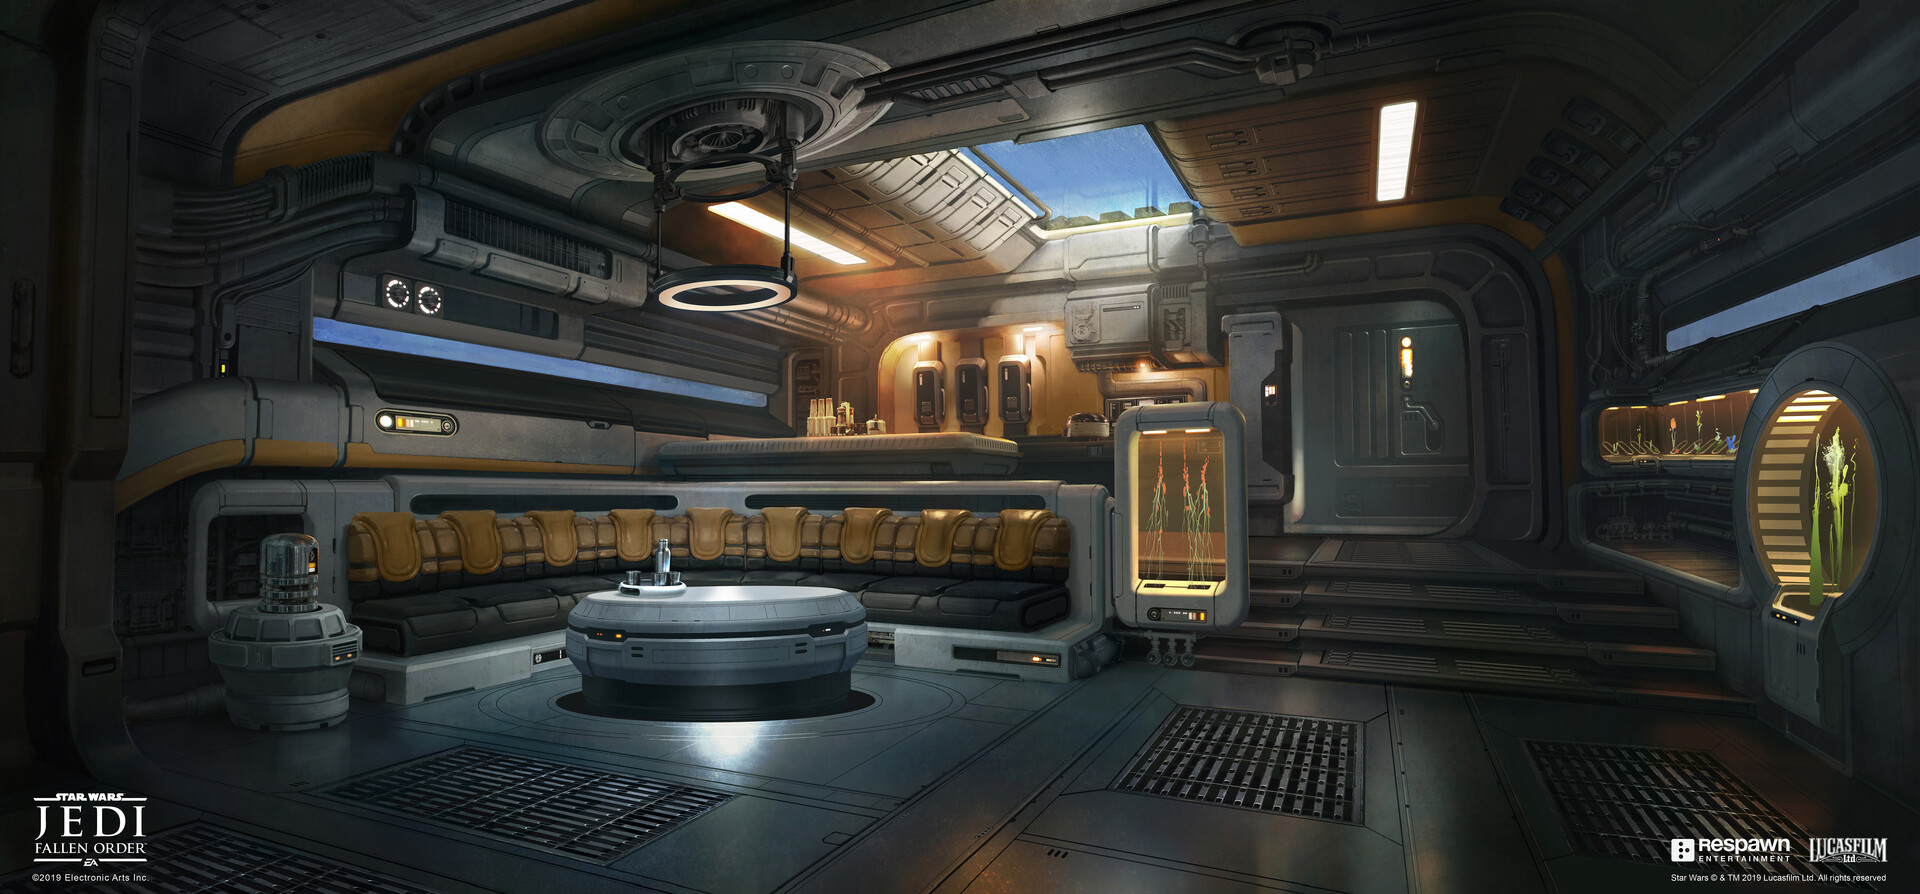 jean-francois-rey-ship-interior-lounge.j